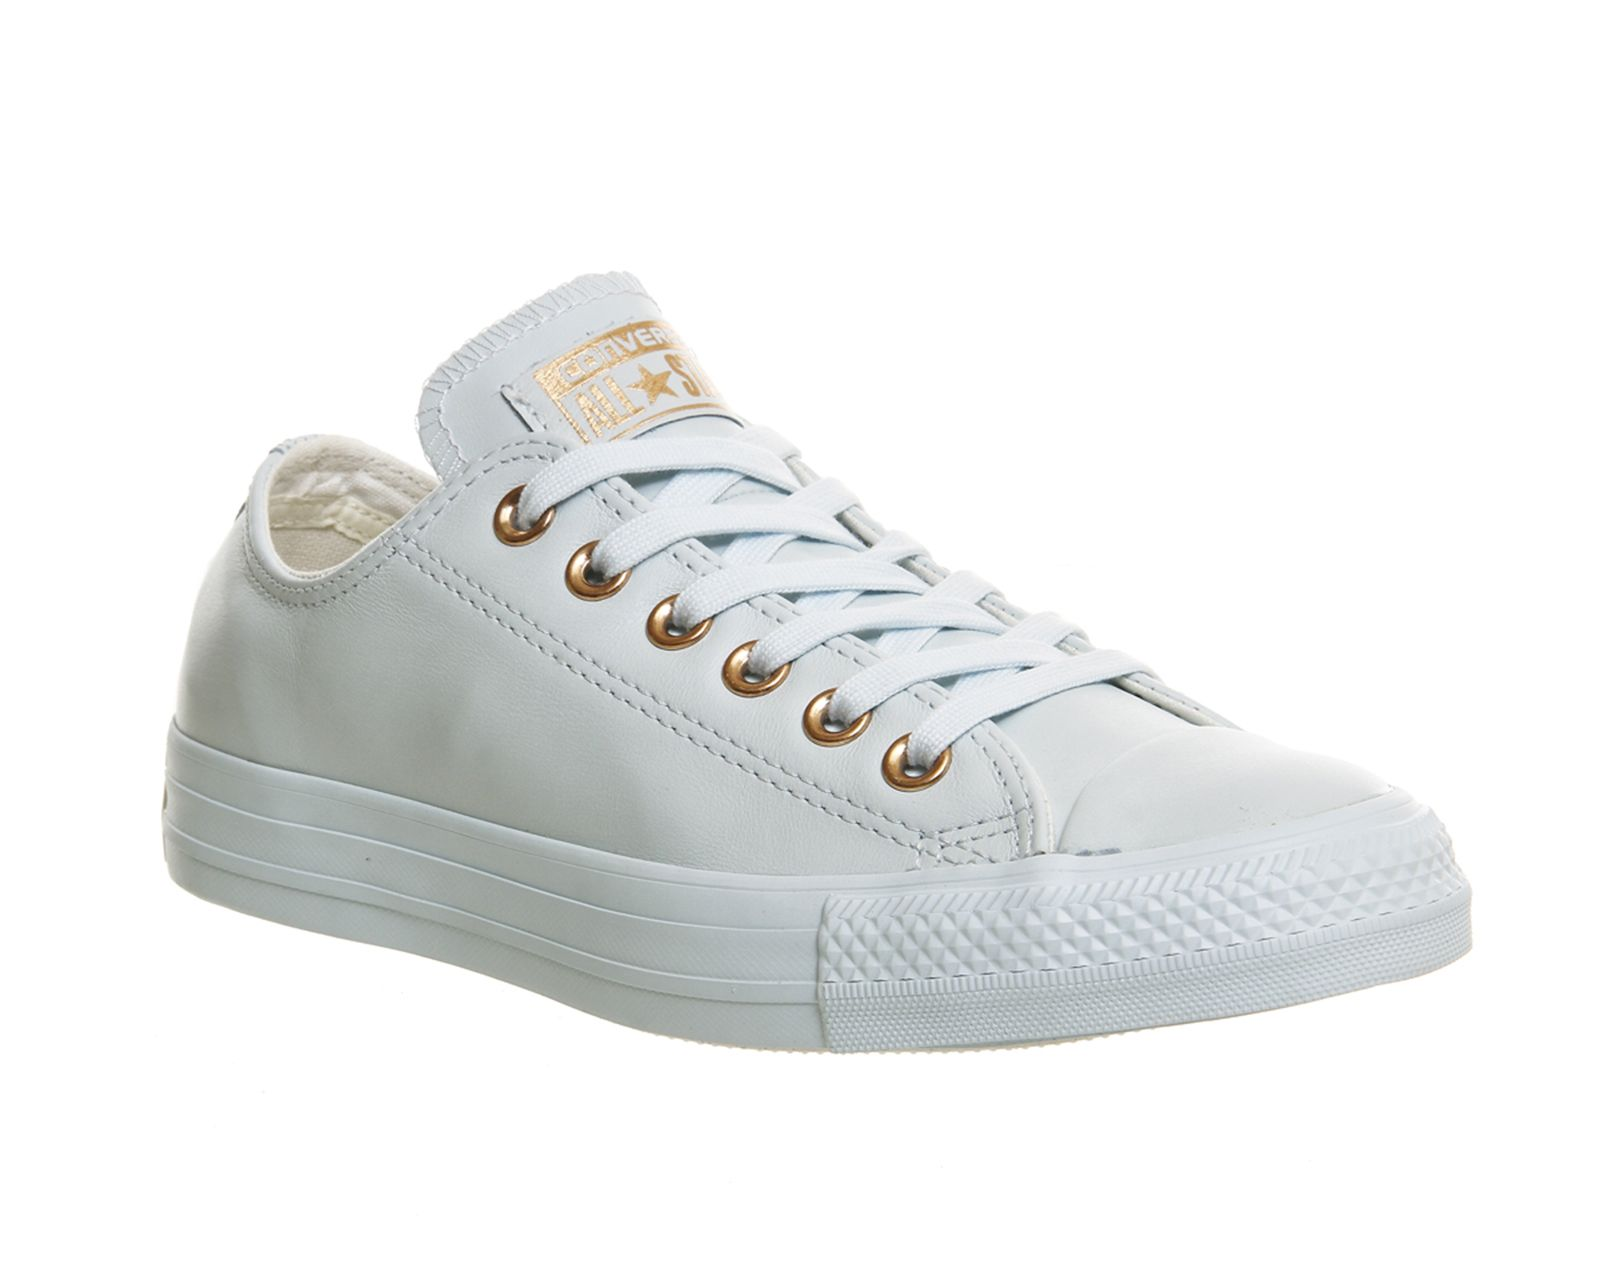 Damen Converse Sneaker Low All Star Leder Schuhe Cooler